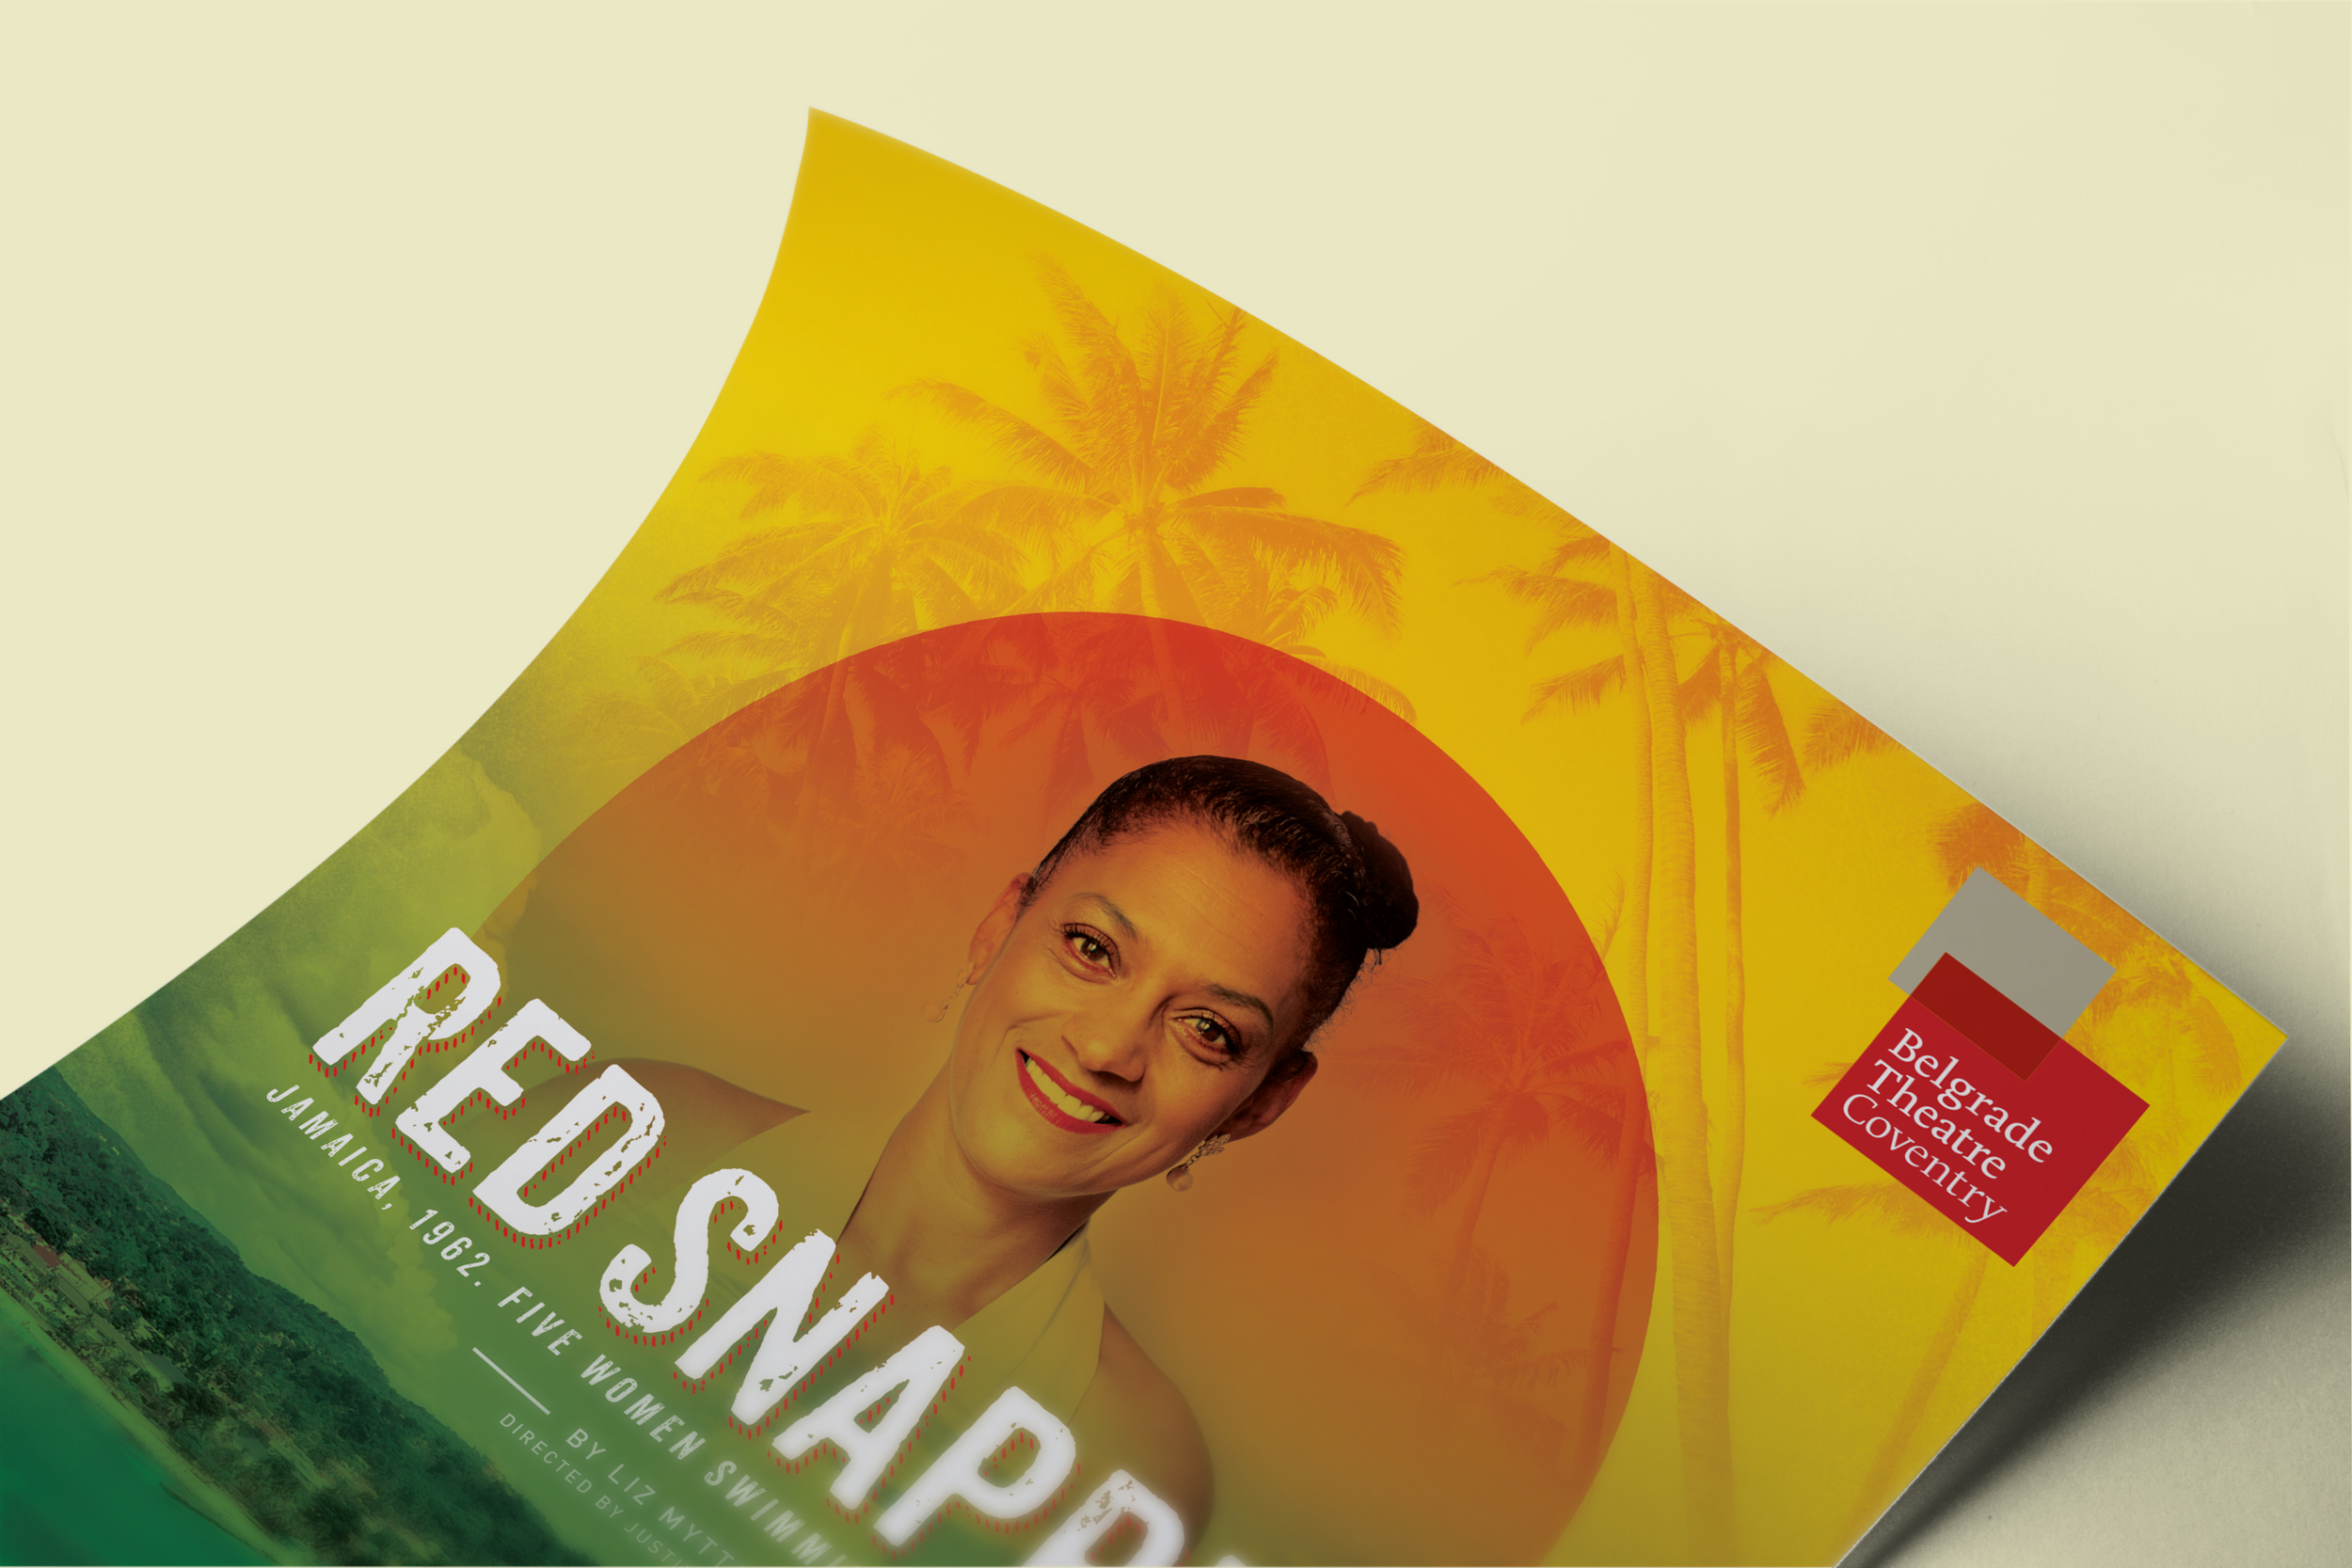 Red Snapper show artwork on a leaflet by Create Onsight